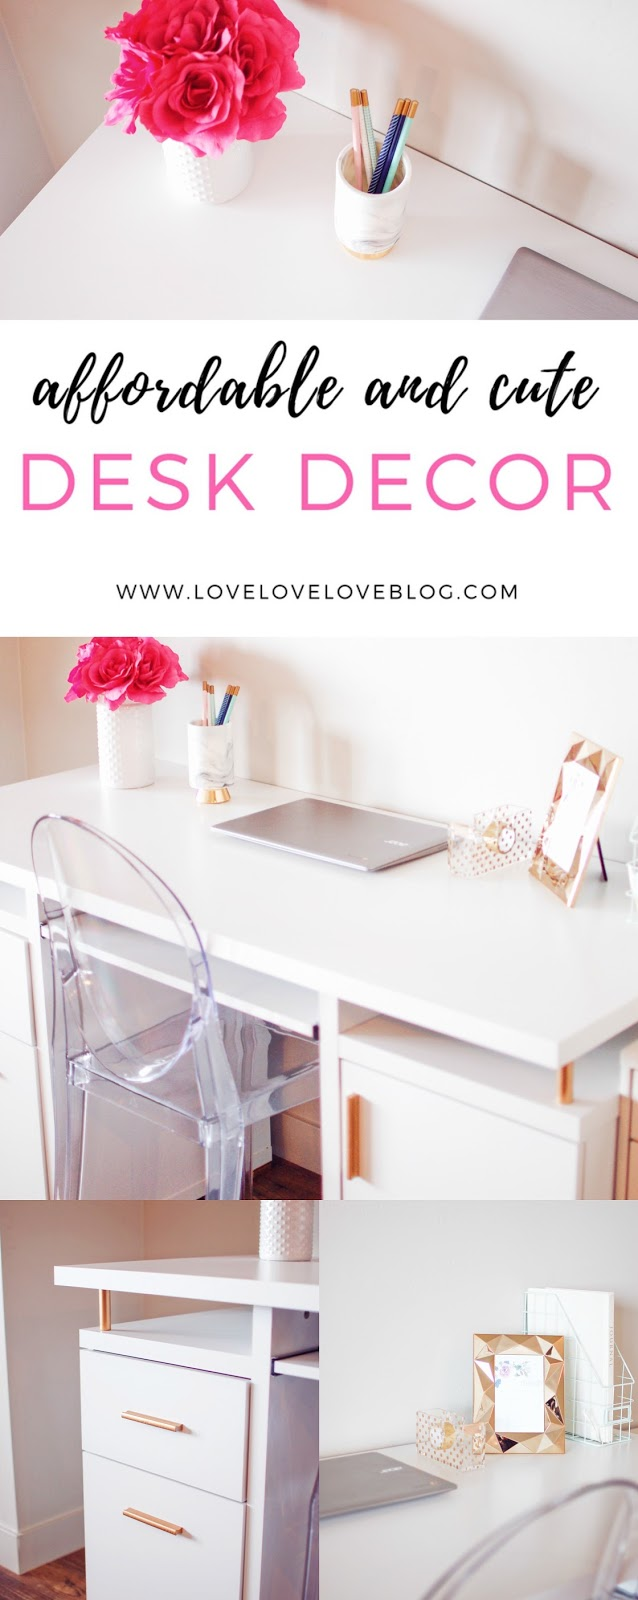 paint designs chic desk chalk white ideas gpfarmasi desks decor inspirational computer plans on corner spaces living diy office